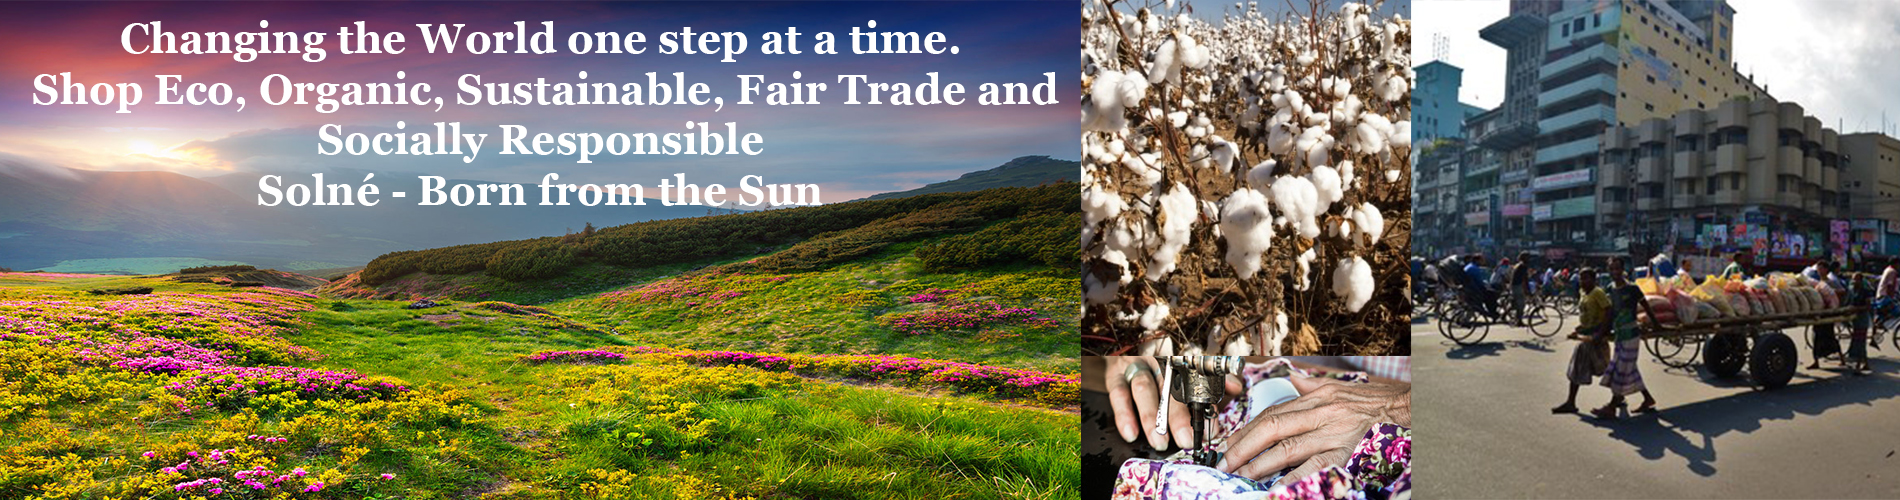 Shop Eco, Organic, Sustainable, Fair Trade and Socially Responsible